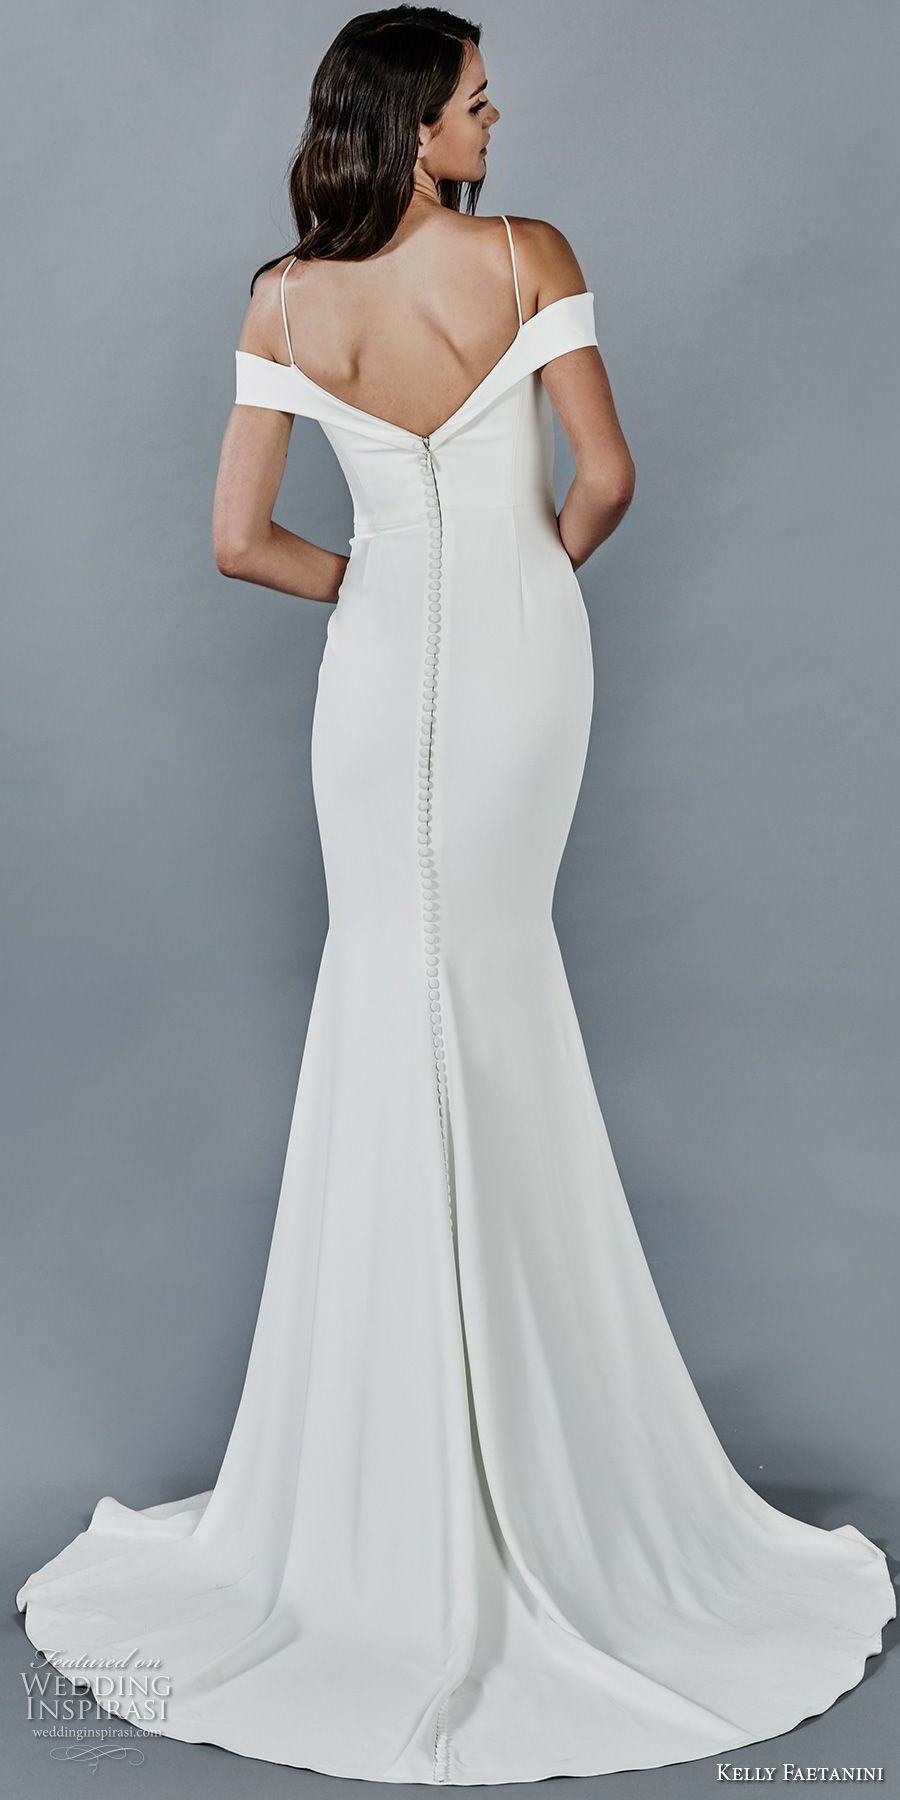 kelly faetanini fall 2018 bridal spaghetti strap off the shoulder sweetheart neckline simple clean fit and flare wedding dress sweep train (7) bv